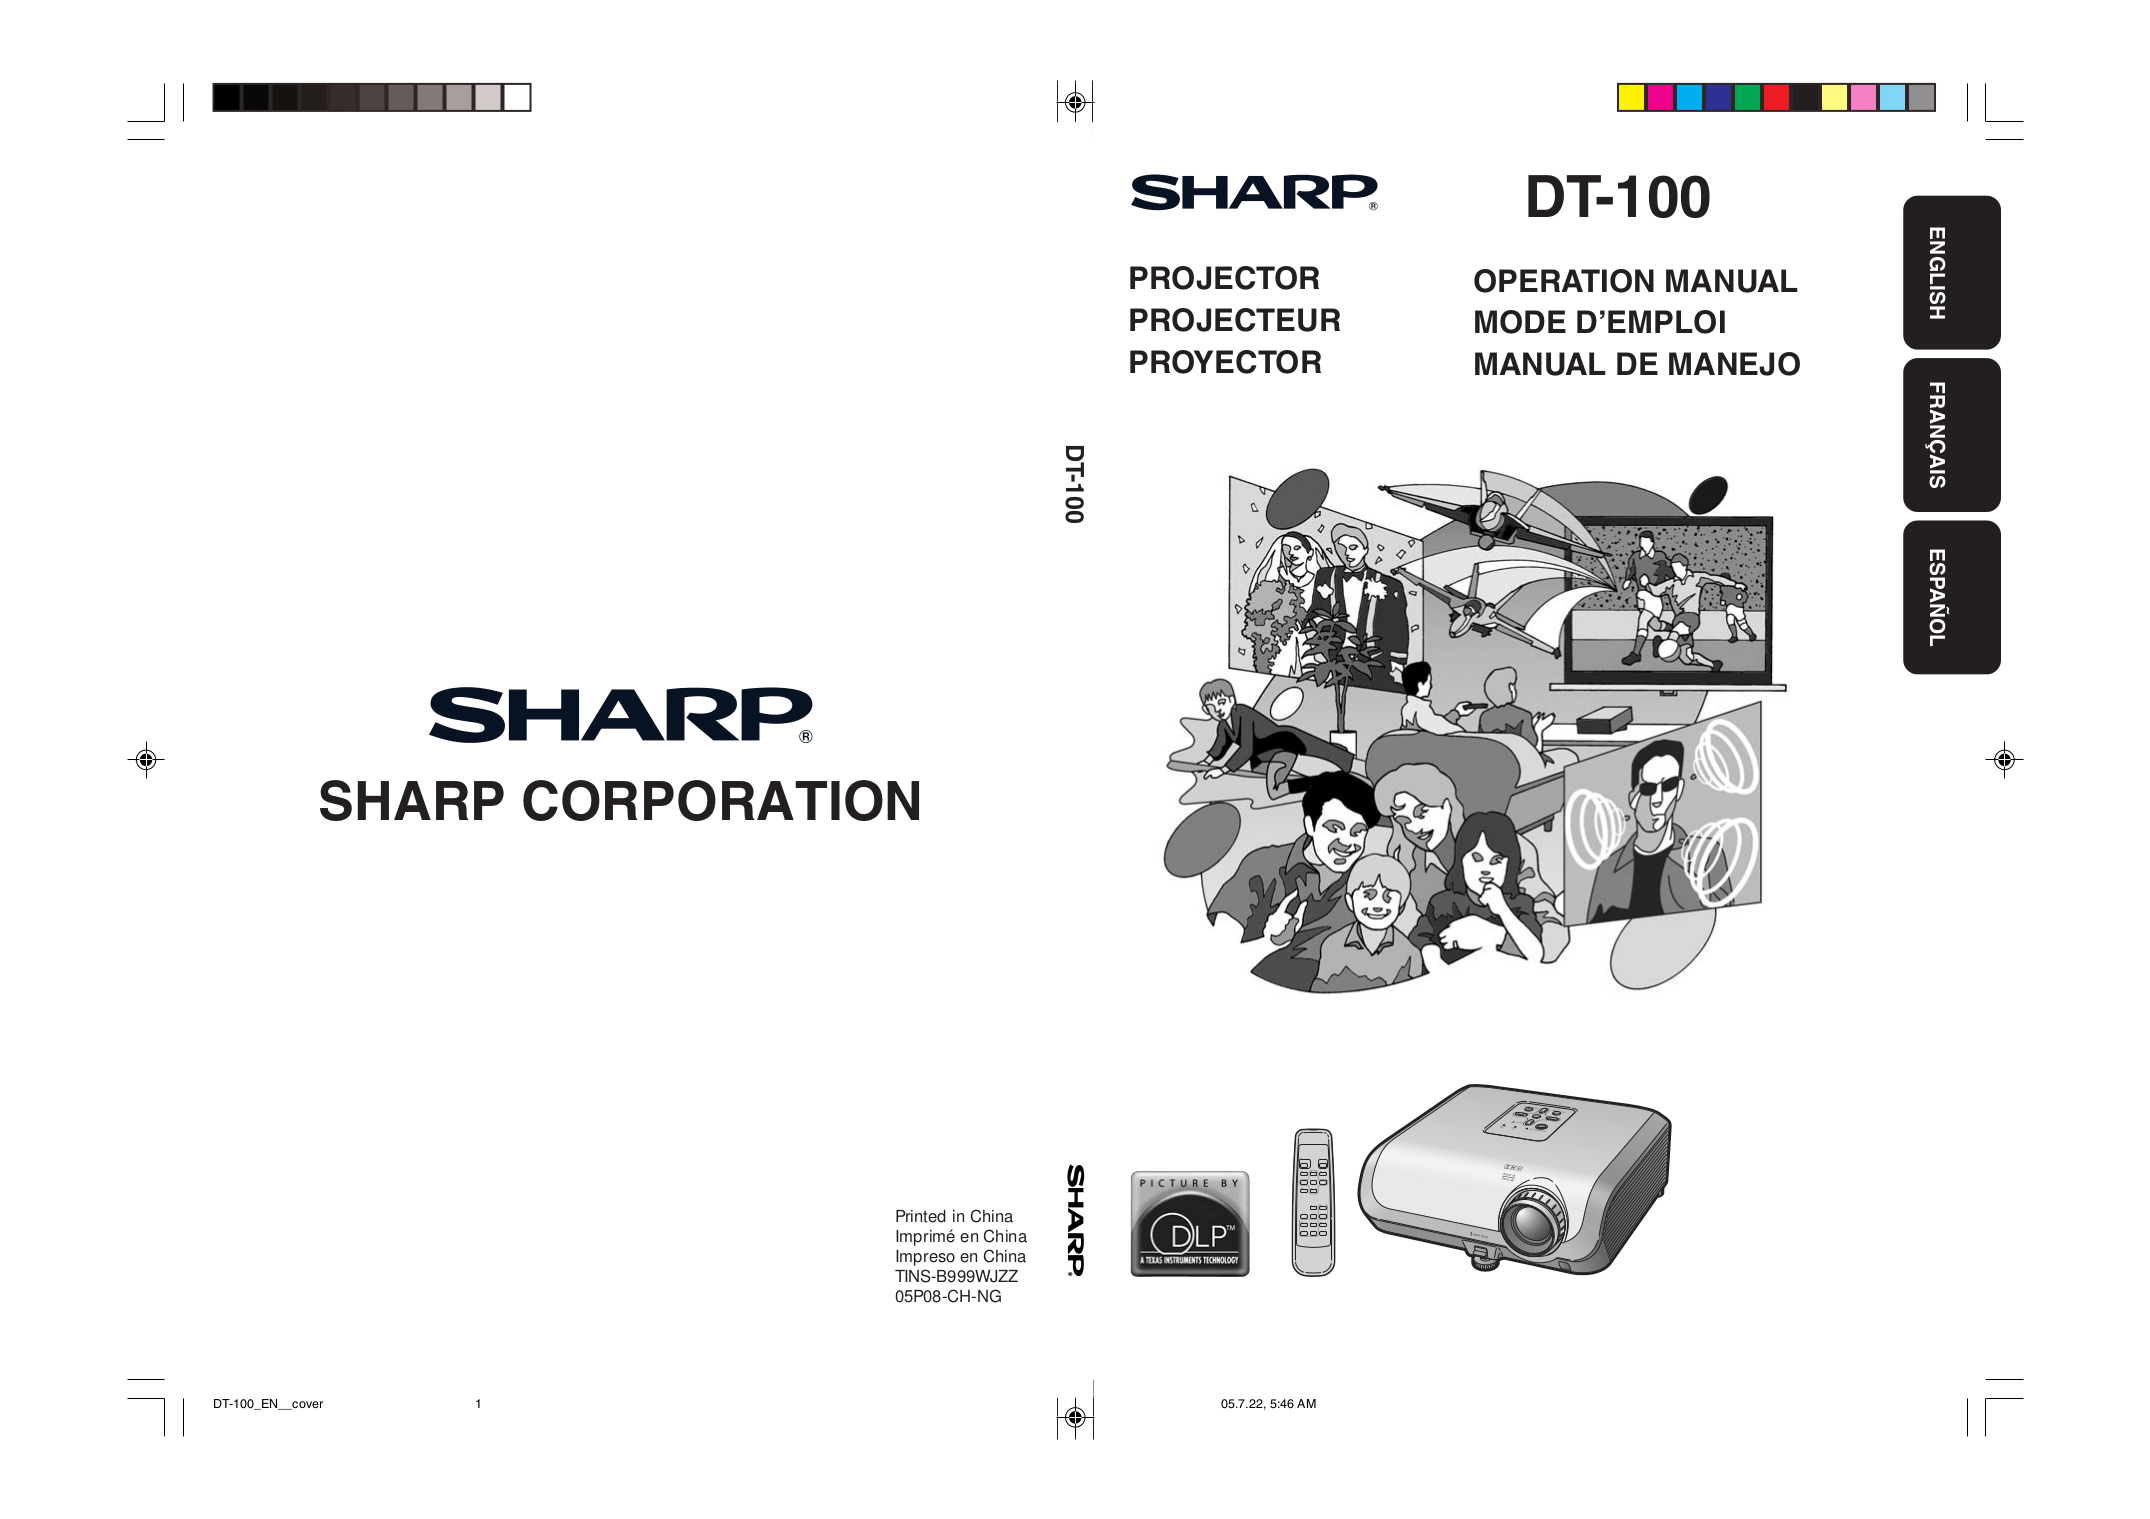 Download free pdf for Sharp DT-200 Projector manual